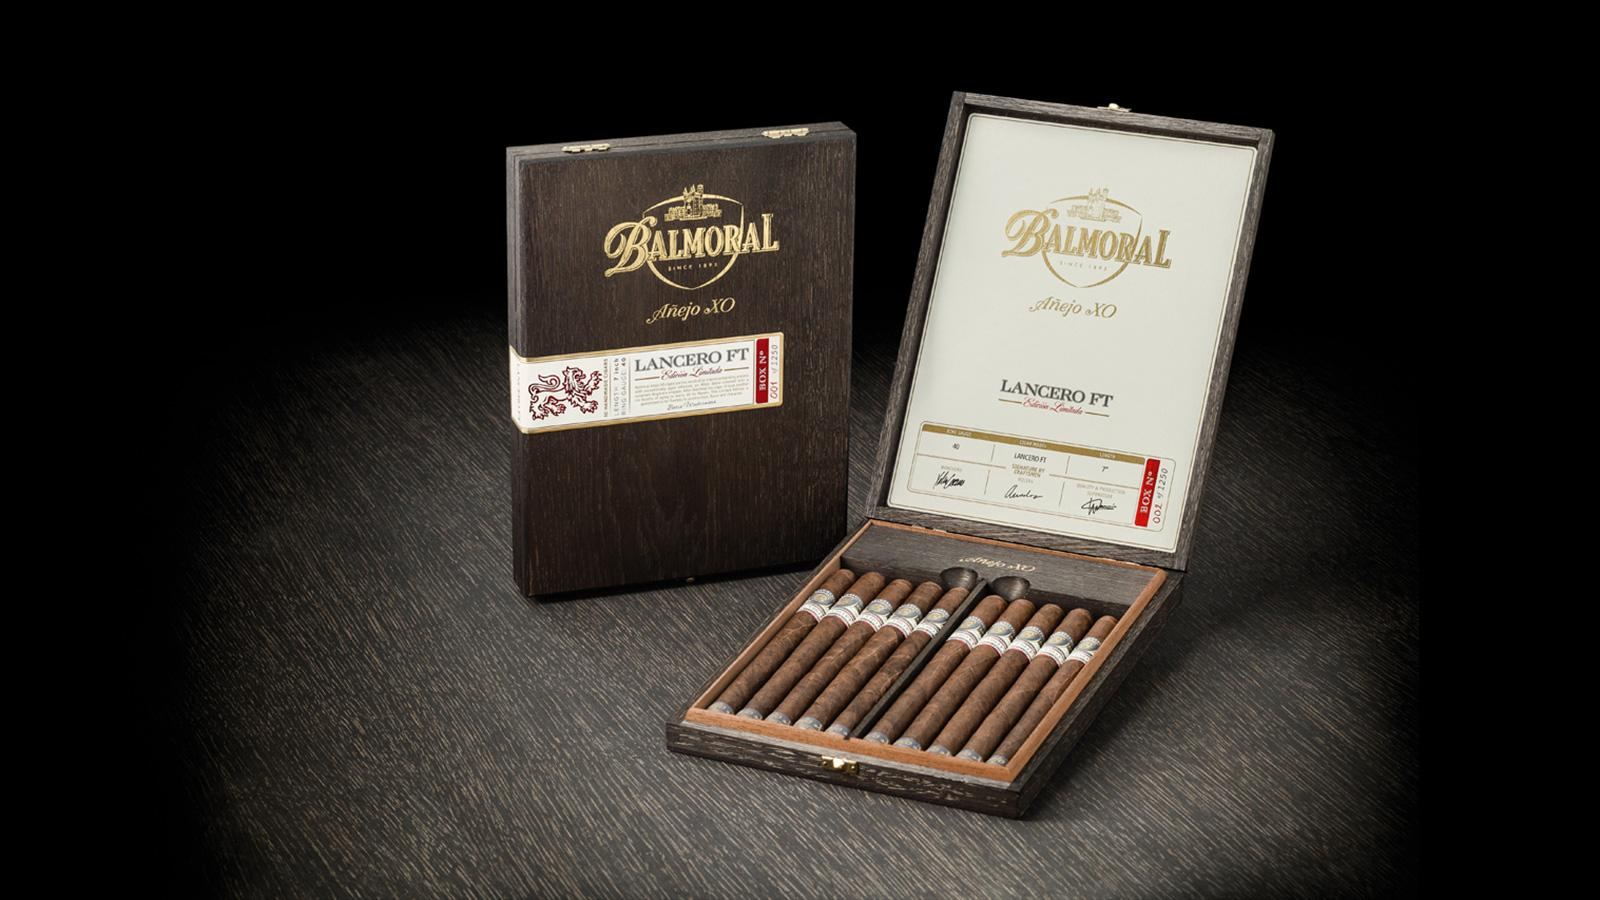 Balmoral Añejo XO Lancero Returns This Month